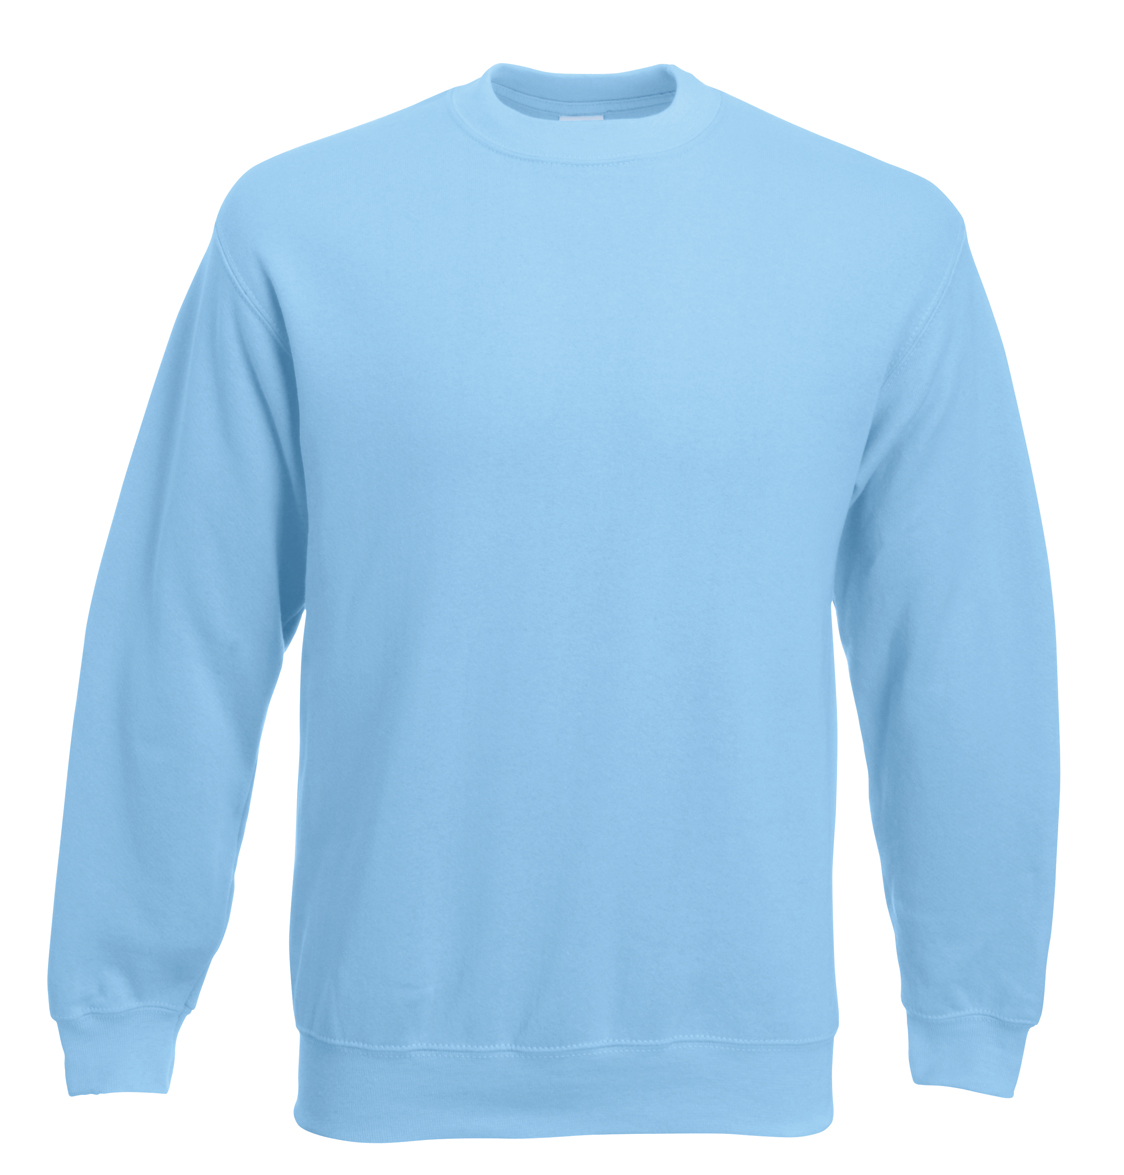 Fruit of the Loom Set-In Sweater 622020 Sky Blue